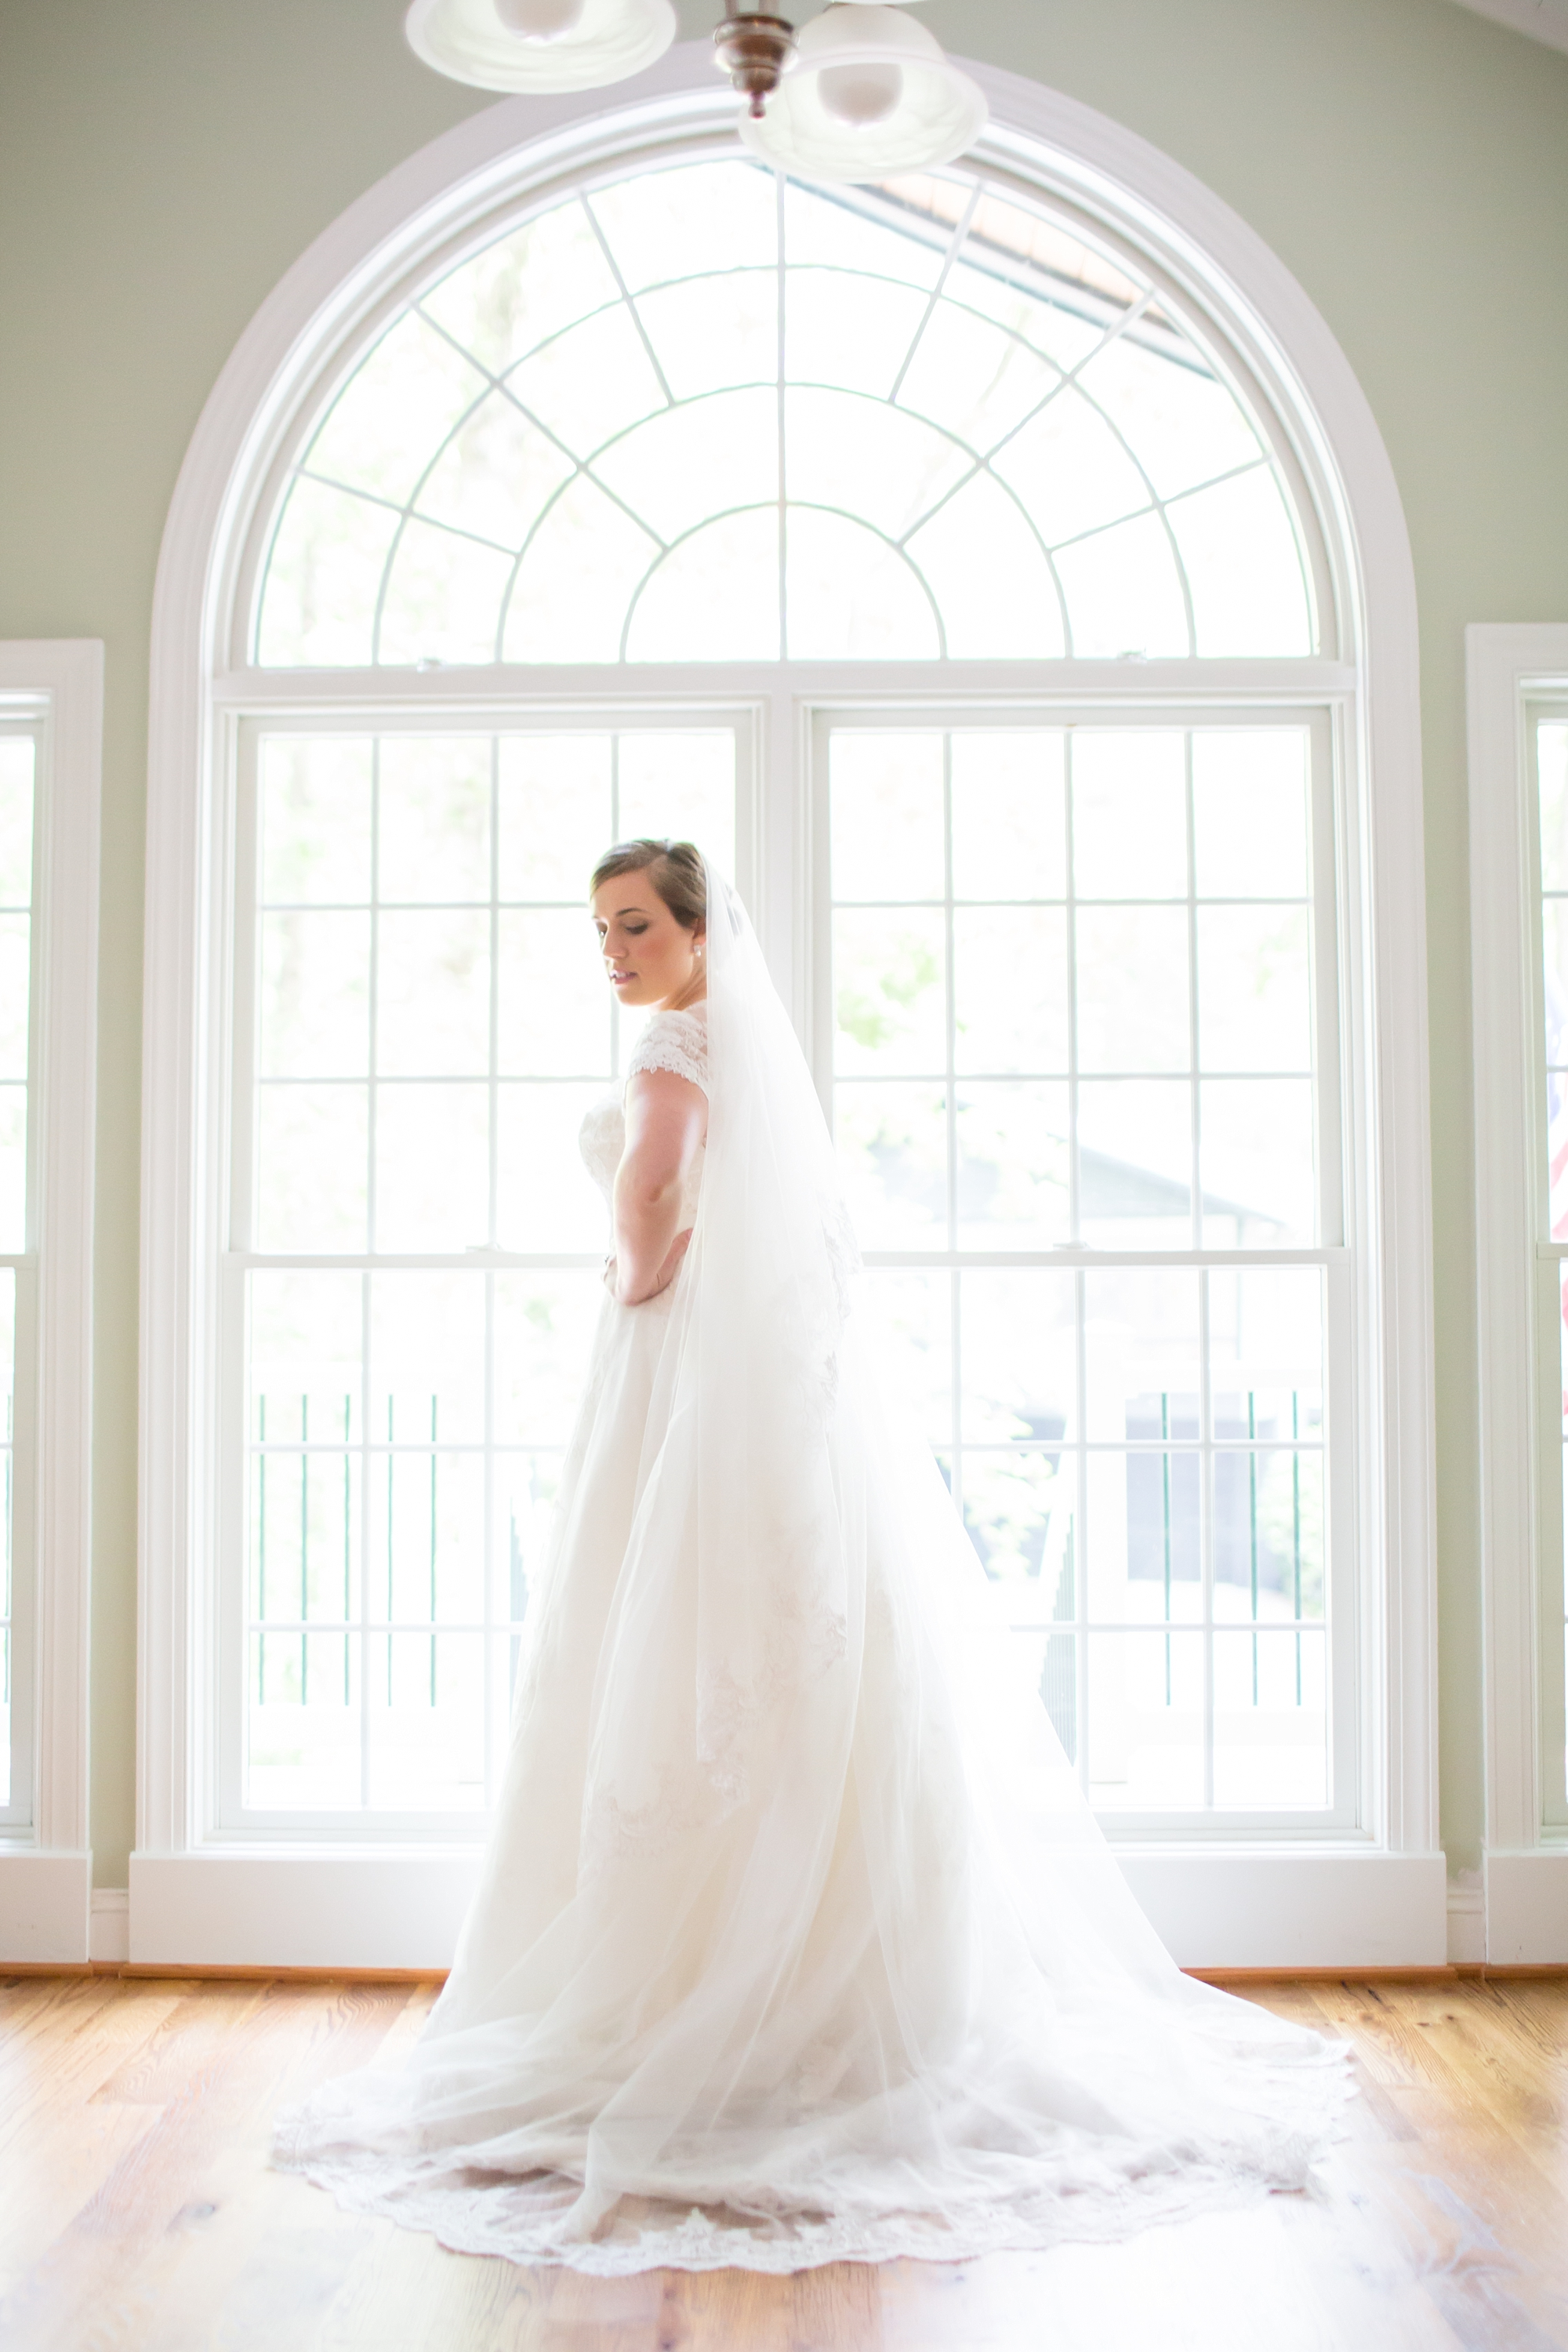 Somerville 1-Getting Ready-820_anna grace photography sherwood forest annapolis maryland wedding photographer photo.jpg